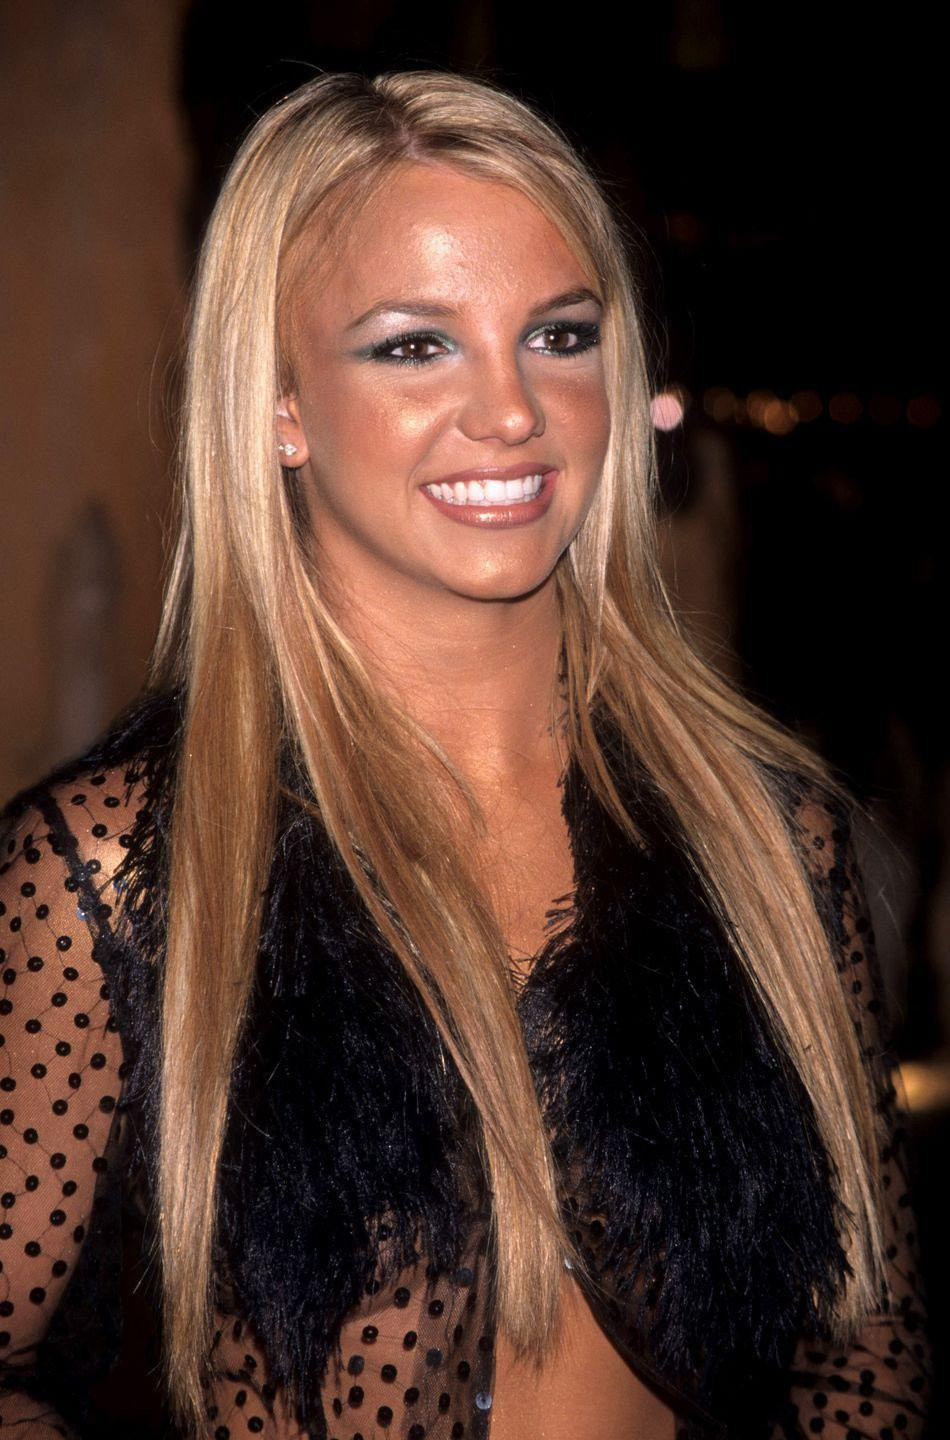 <p>Who else grew obsessed with super long, sleek hair after seeing Brit rock this look at the MTV Music Video Awards? Same same same.</p>